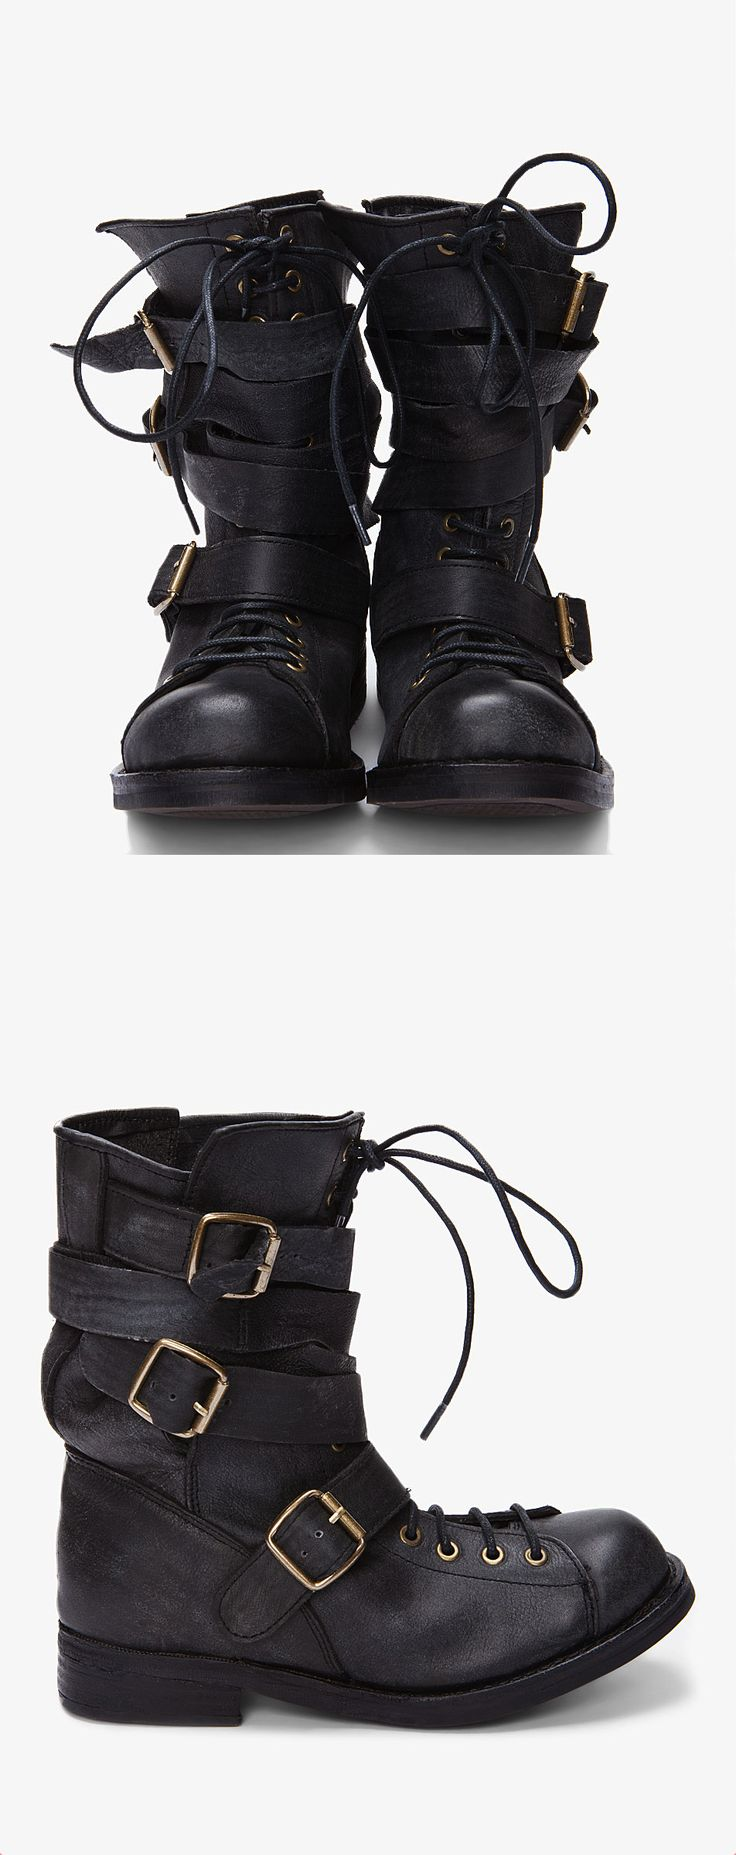 Black Fall Man Boots from Jeffrey Campbell.